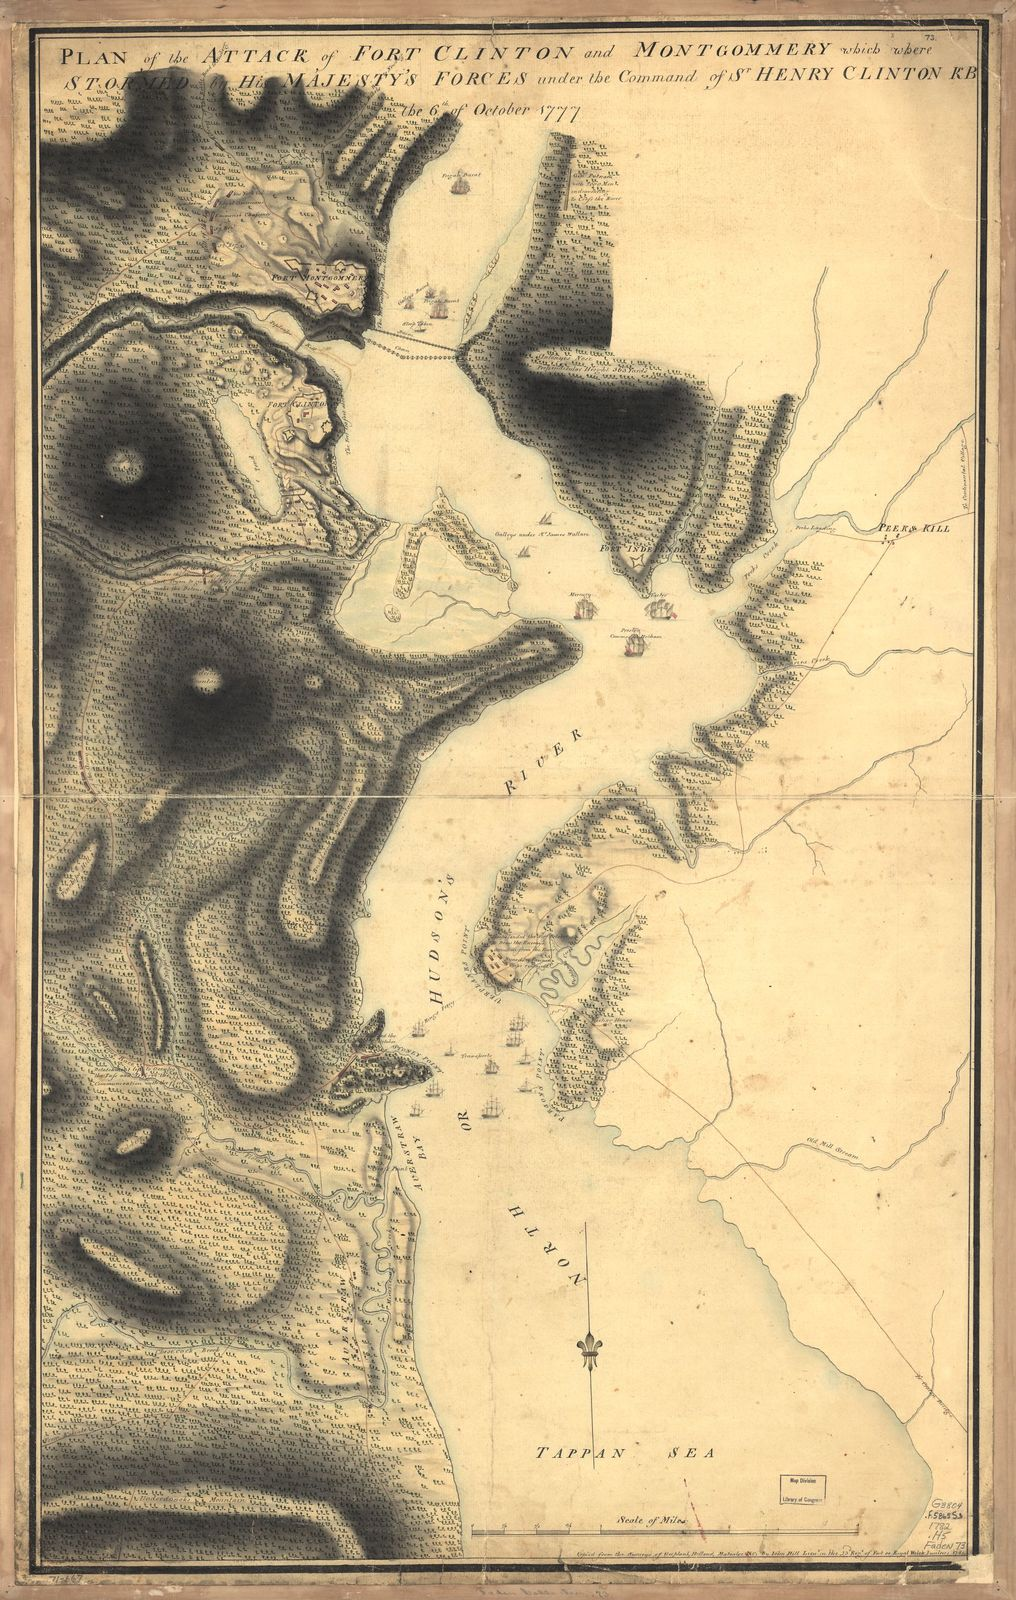 Plan of the attack of Fort Clinton and Montgomery which where [sic] stormed by His Majesty's forces under the command of Sr. Henry Clinton, KB, the 6th of October 1777.